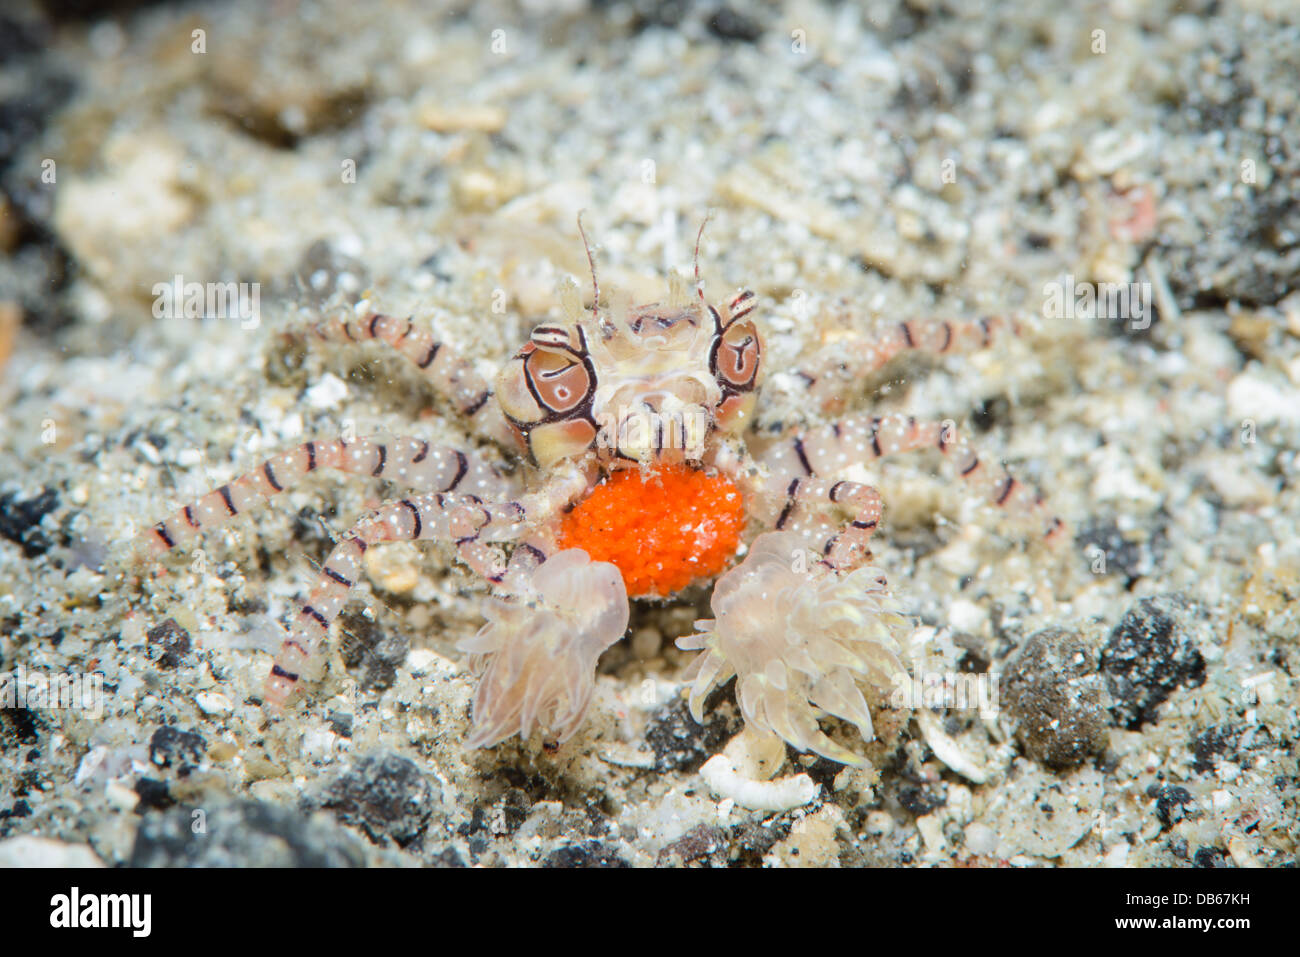 A boxer crab with eggs from ( Lybia tessellata ) from Lembeh Strait, Indonesia - Stock Image